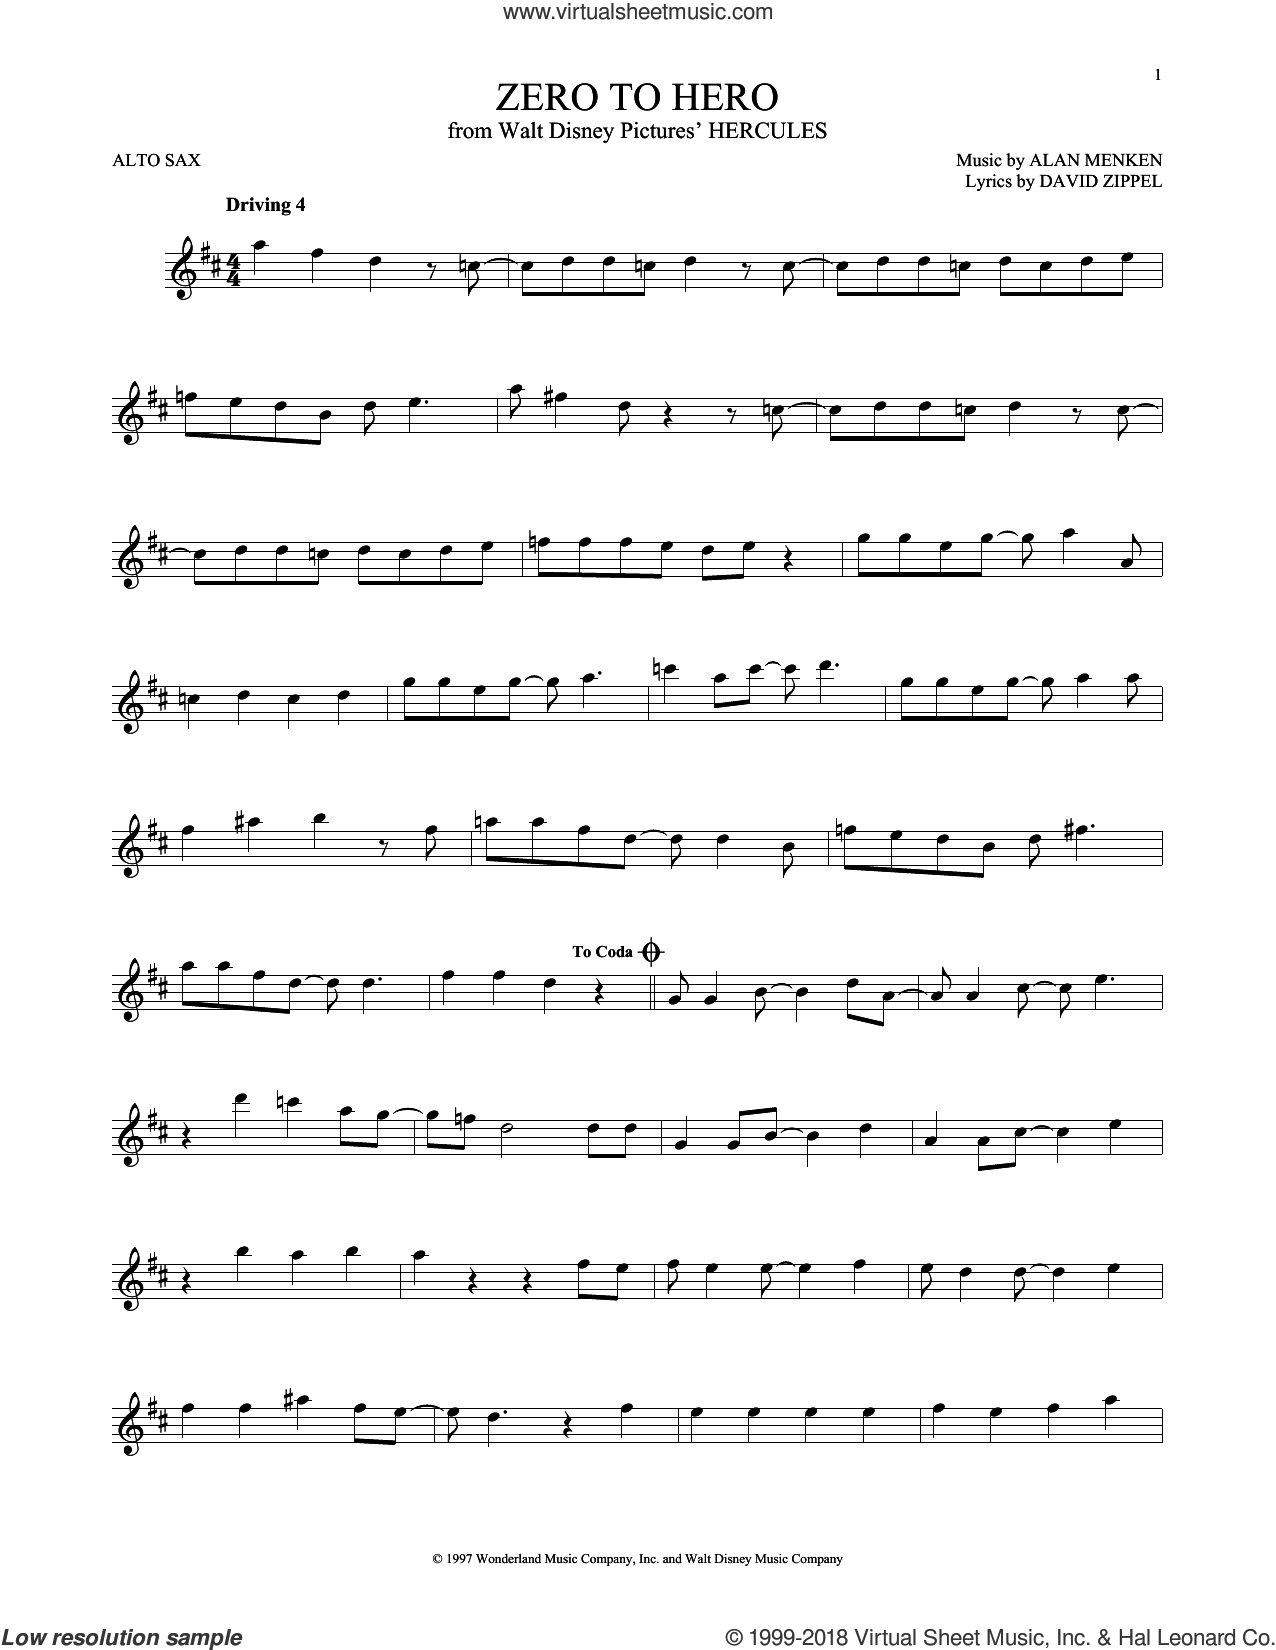 Zero To Hero sheet music for alto saxophone solo by Alan Menken, Alan Menken & David Zippel and David Zippel, intermediate skill level